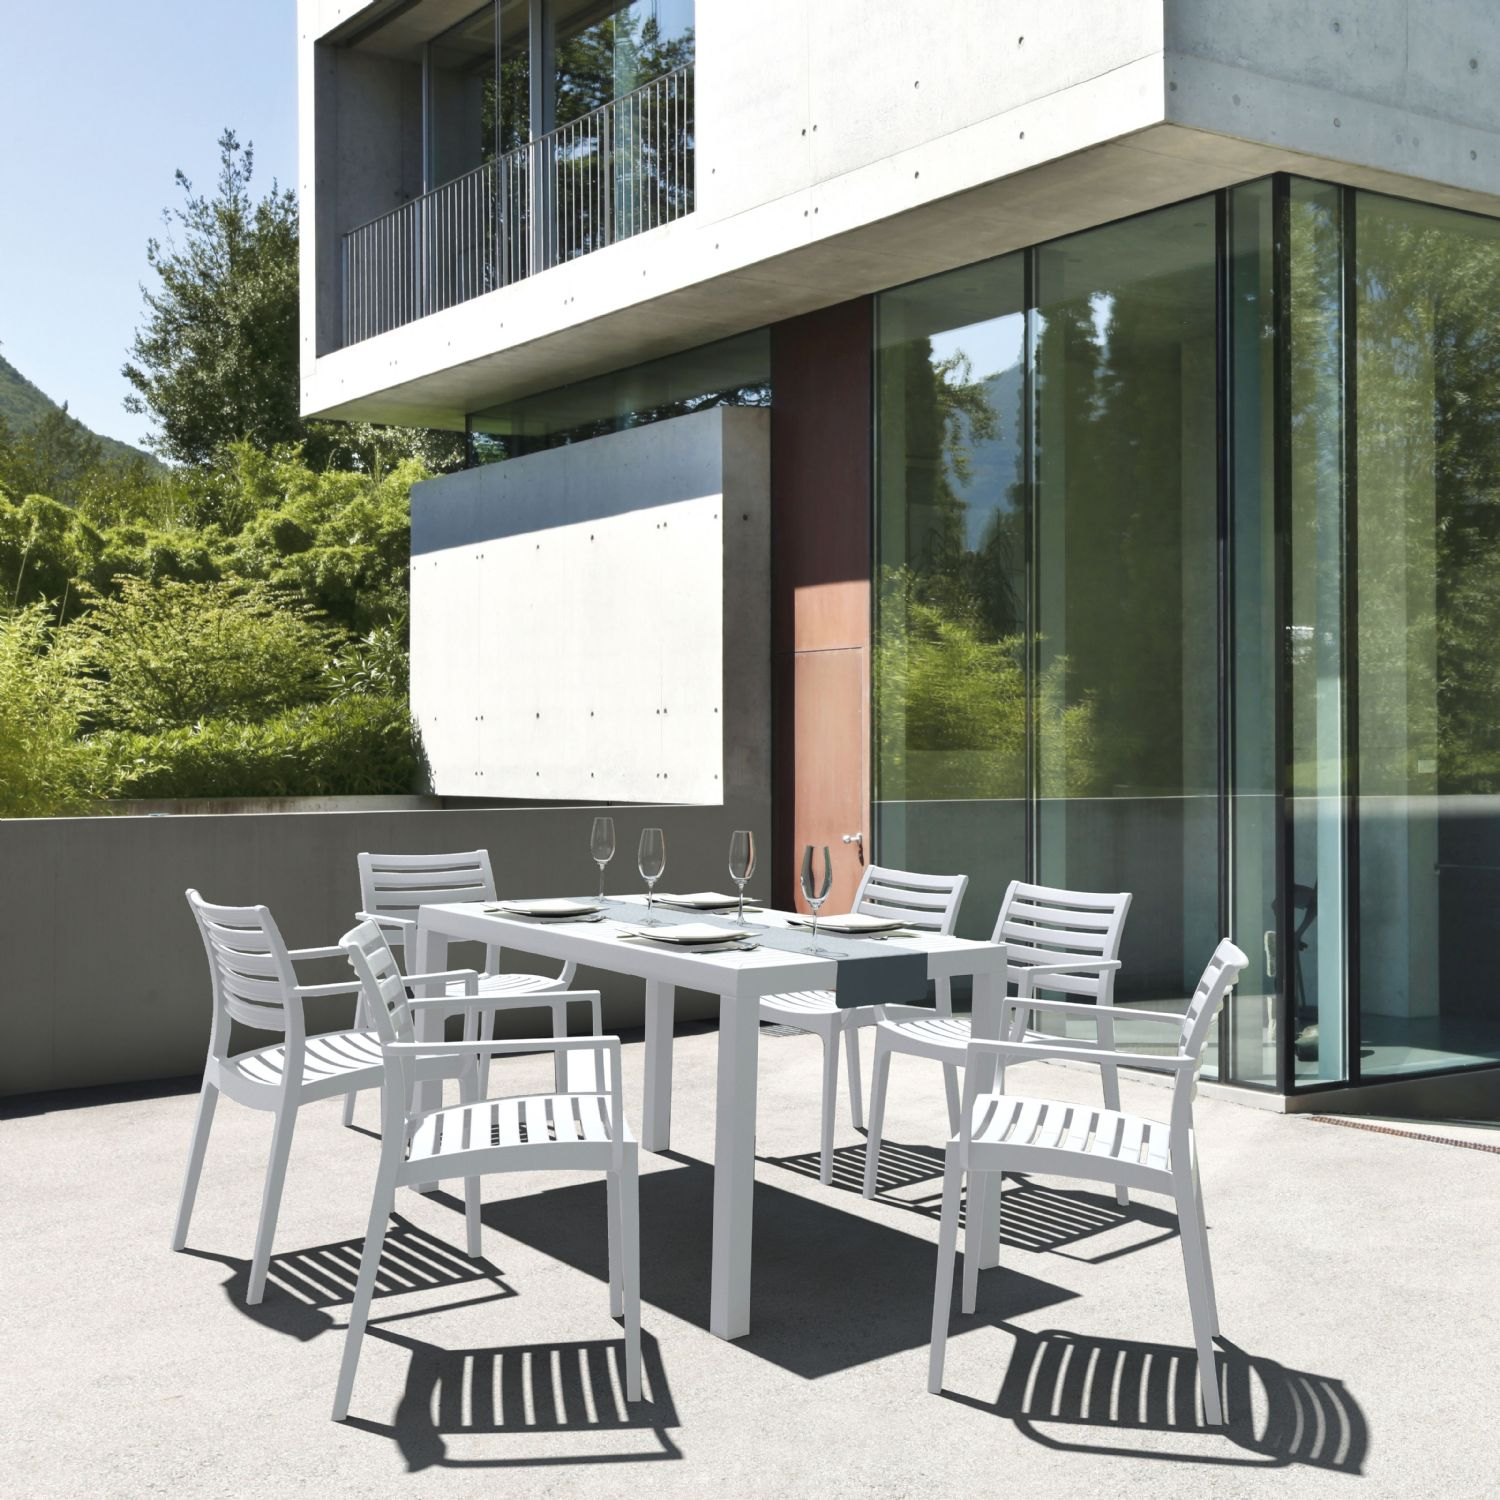 Ares Rectangle Outdoor Table 55 inch White ISP186-WHI - 7